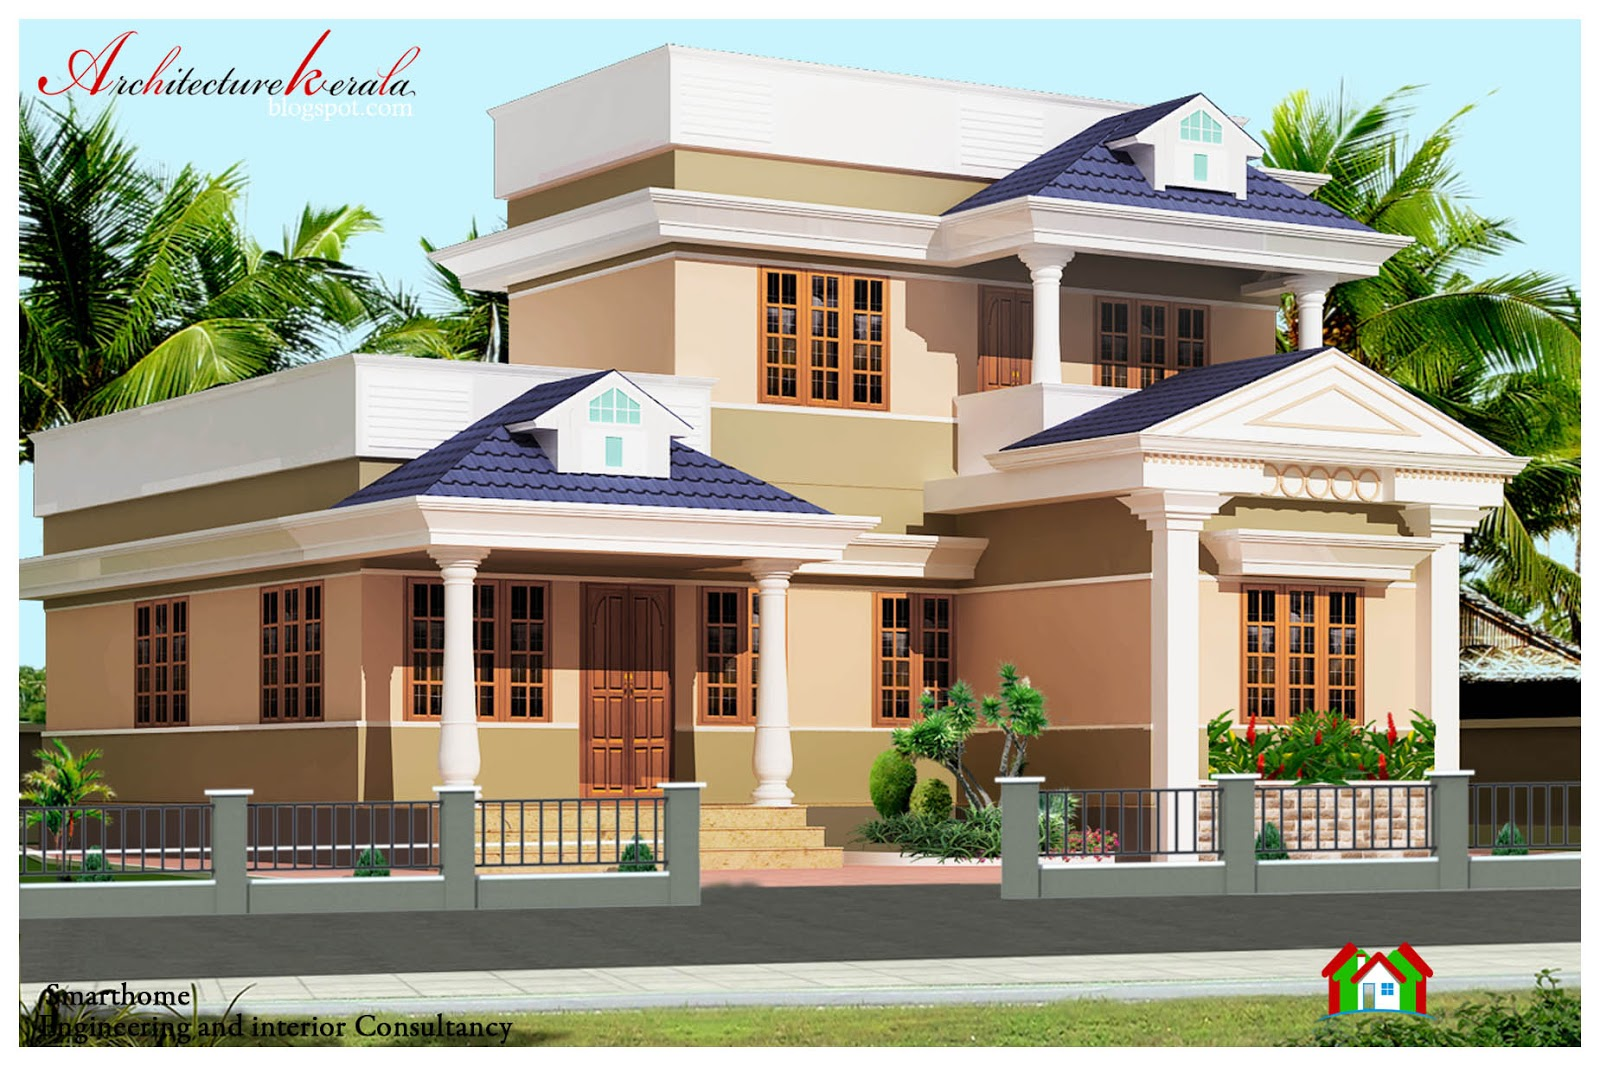 1000 sq ft kerala style house plan architecture kerala for House plans with estimated cost to build in kerala